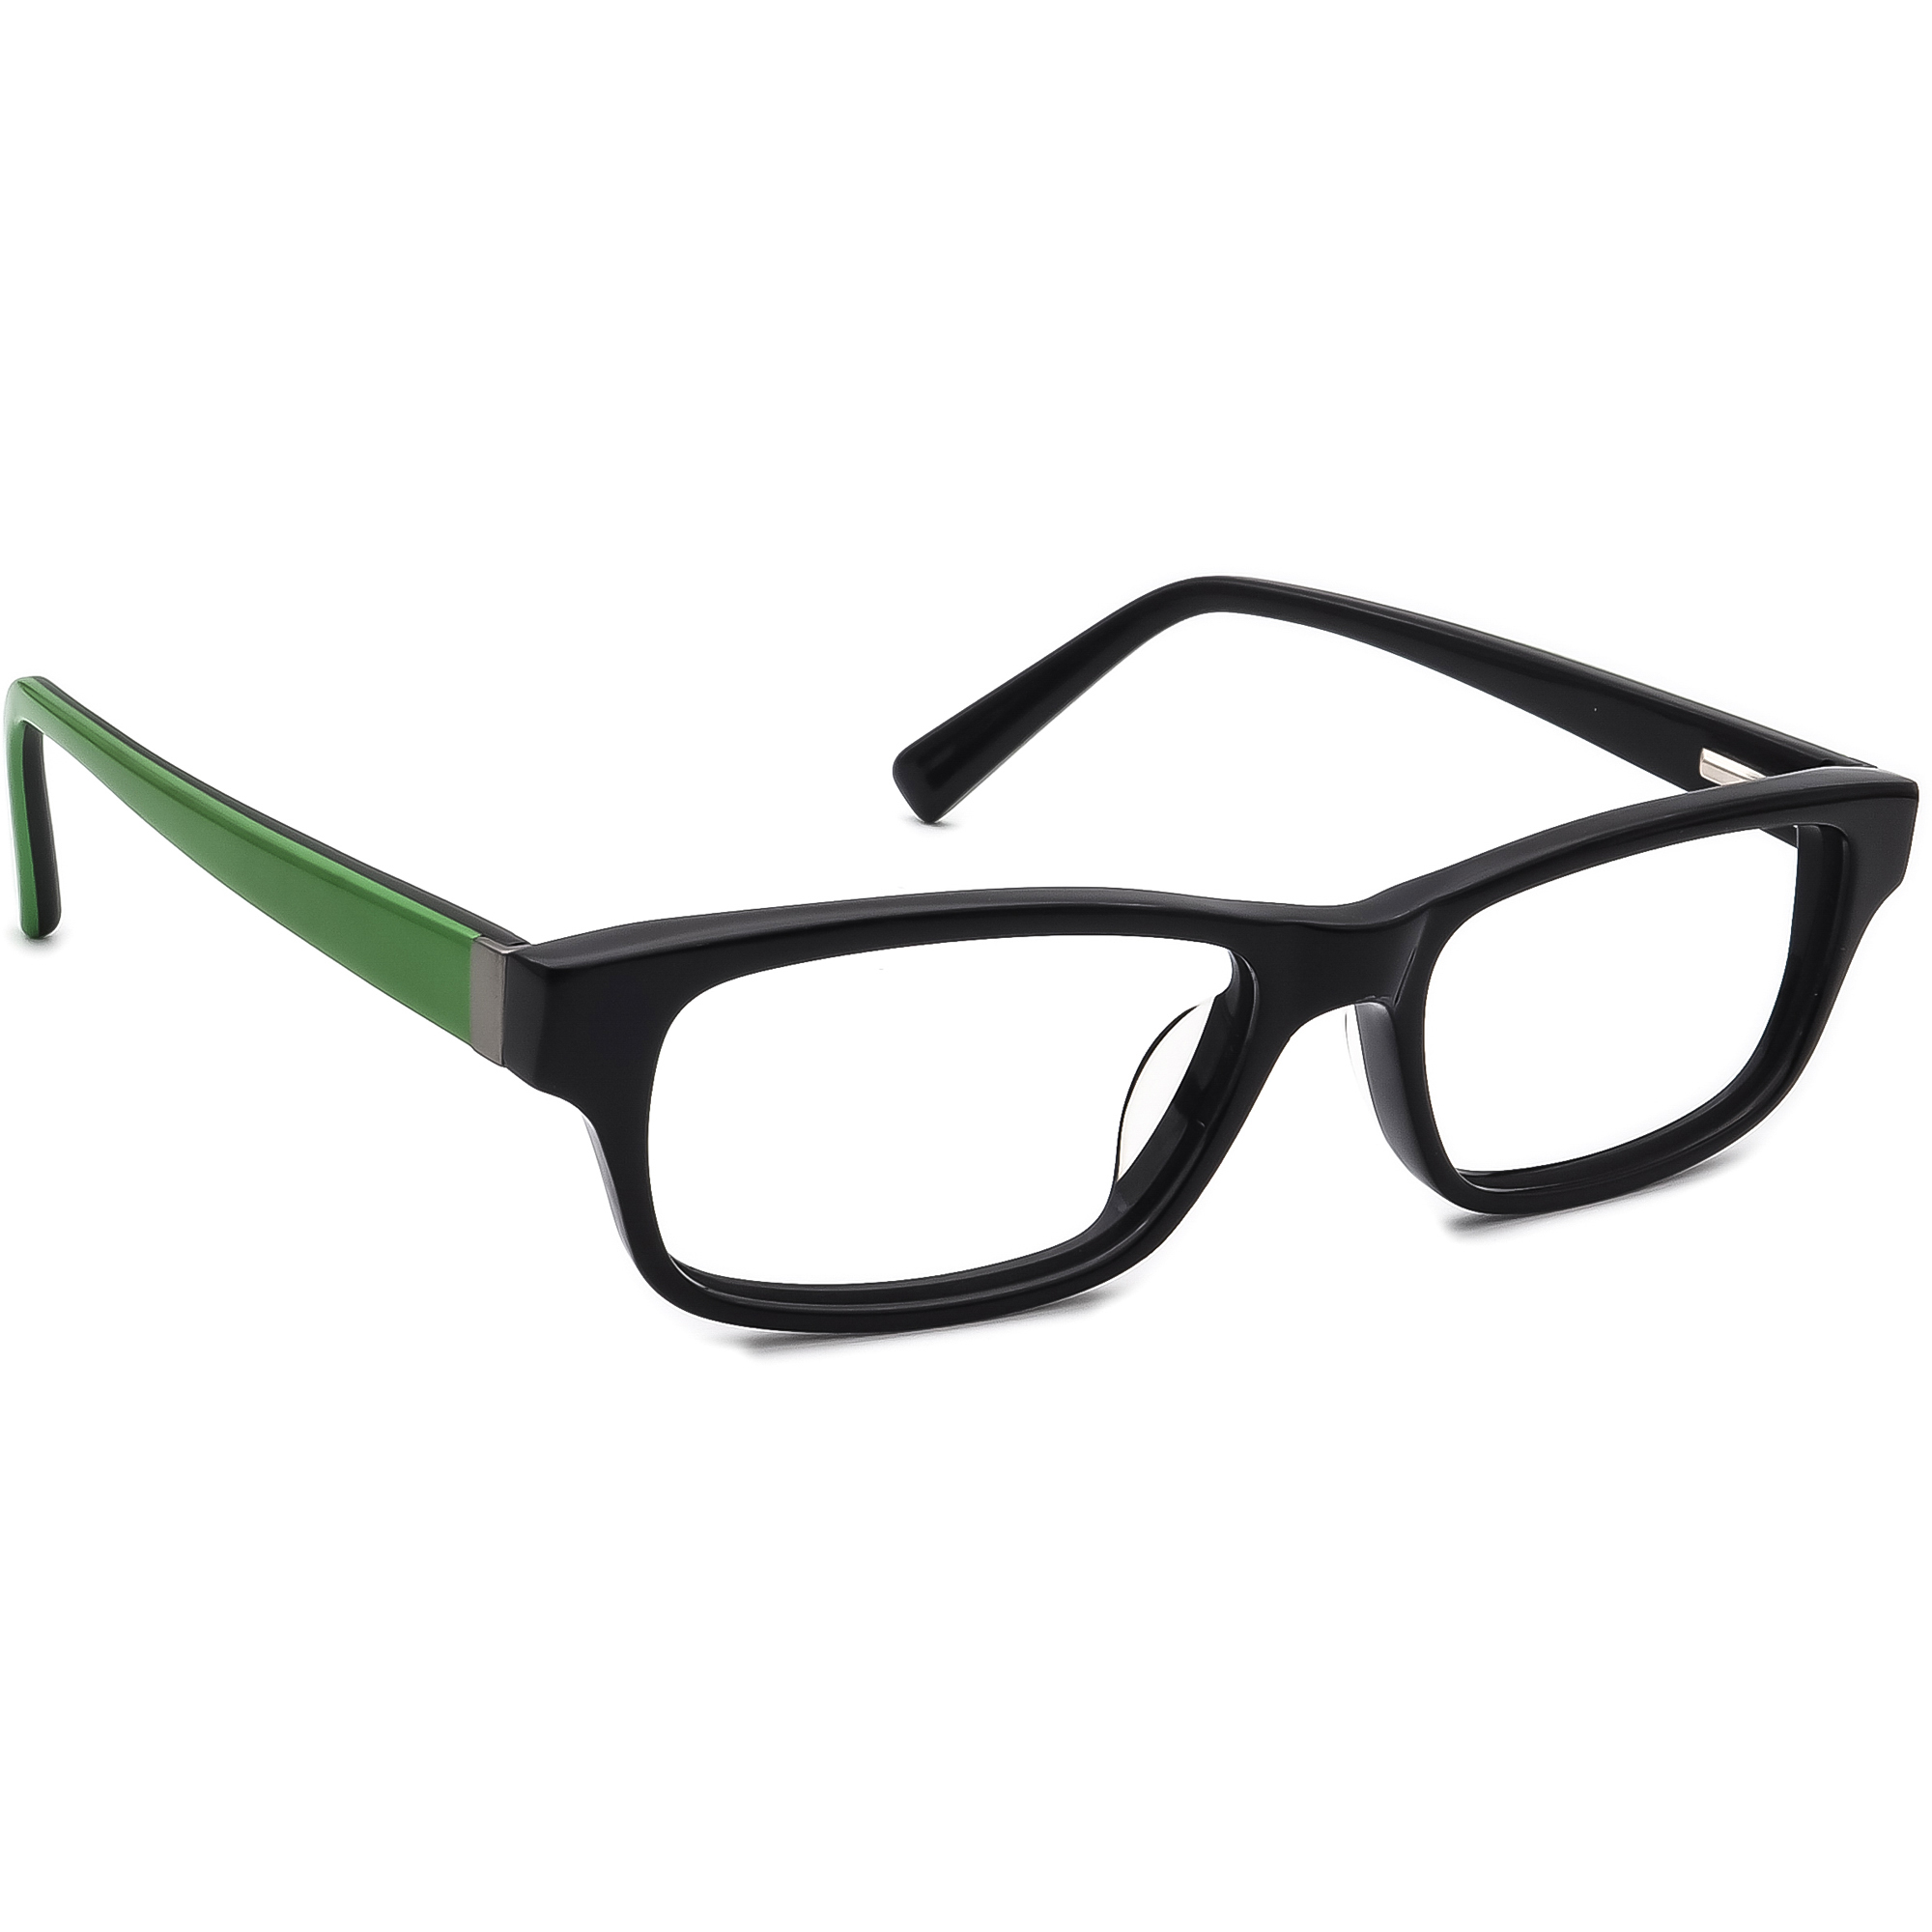 Nike Men's Eyeglasses 5518 010 Black/Green Rectangular Frame 49[]15 130 Small